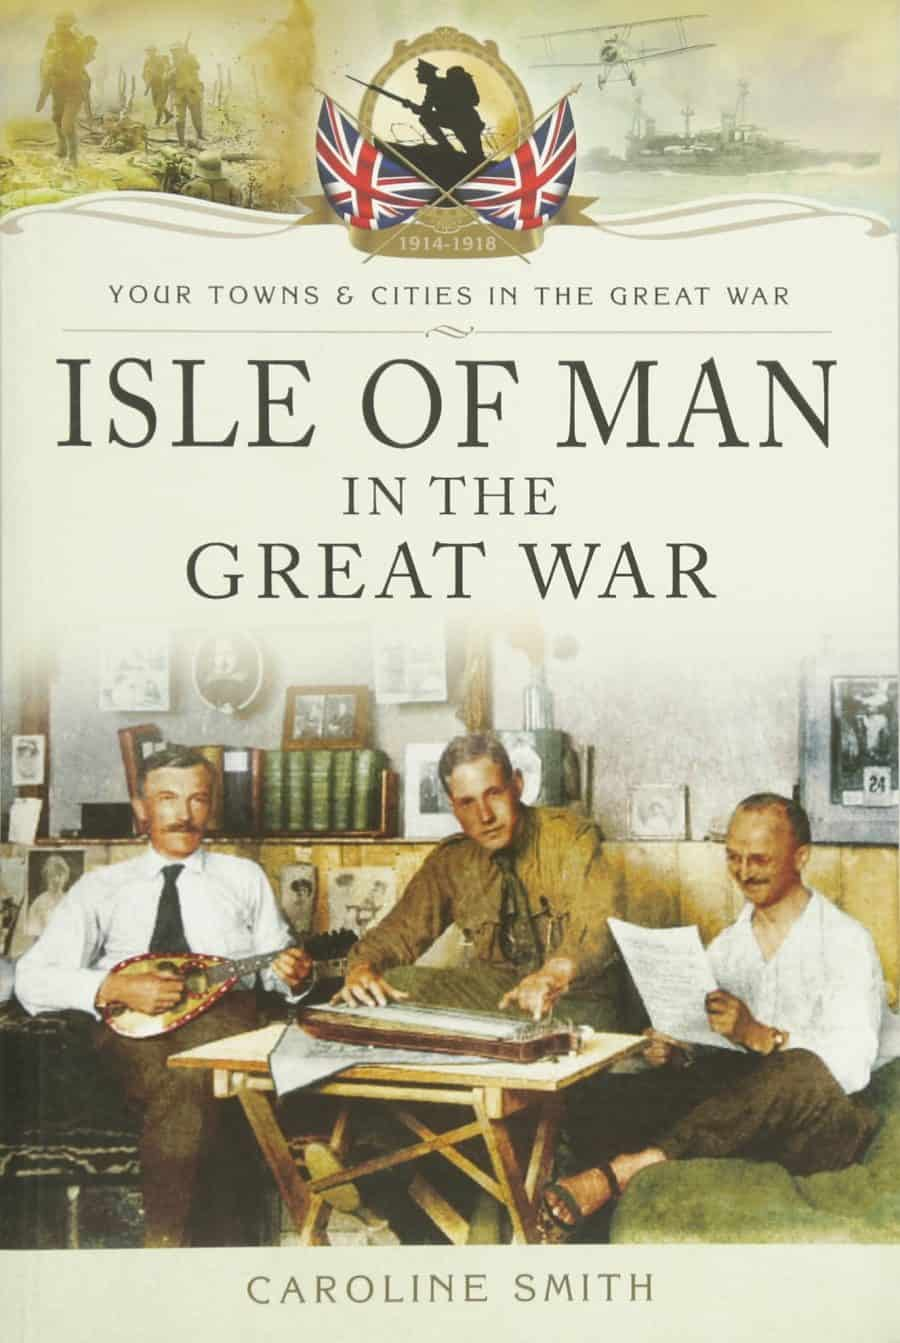 Isle of Man in the Great War by Caroline Smith